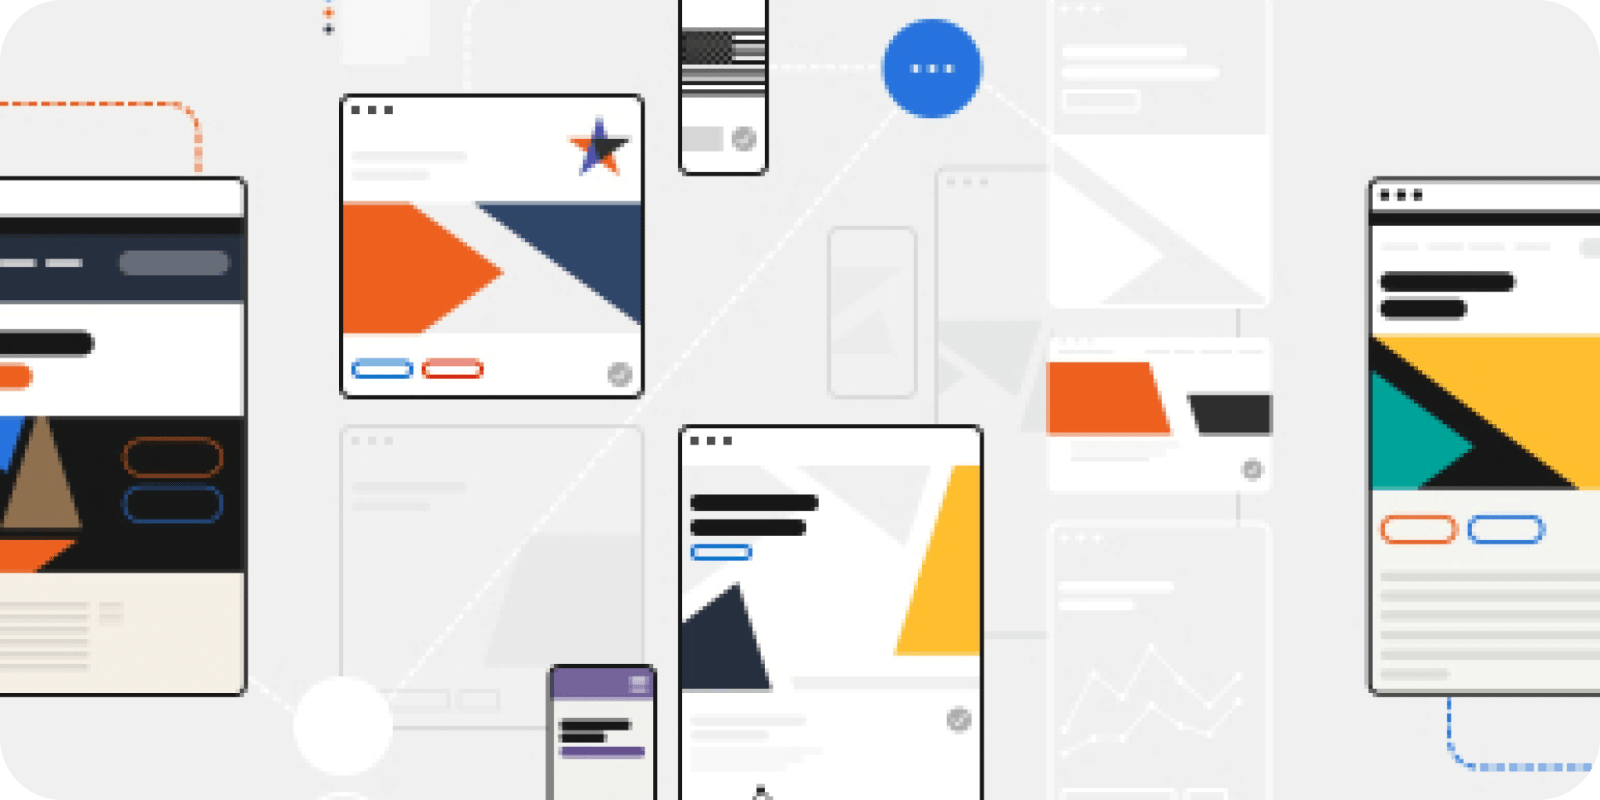 Newest 20 Free Figma Templates To Kickstart Your Next Project By Roman Kamushken Ux Collective